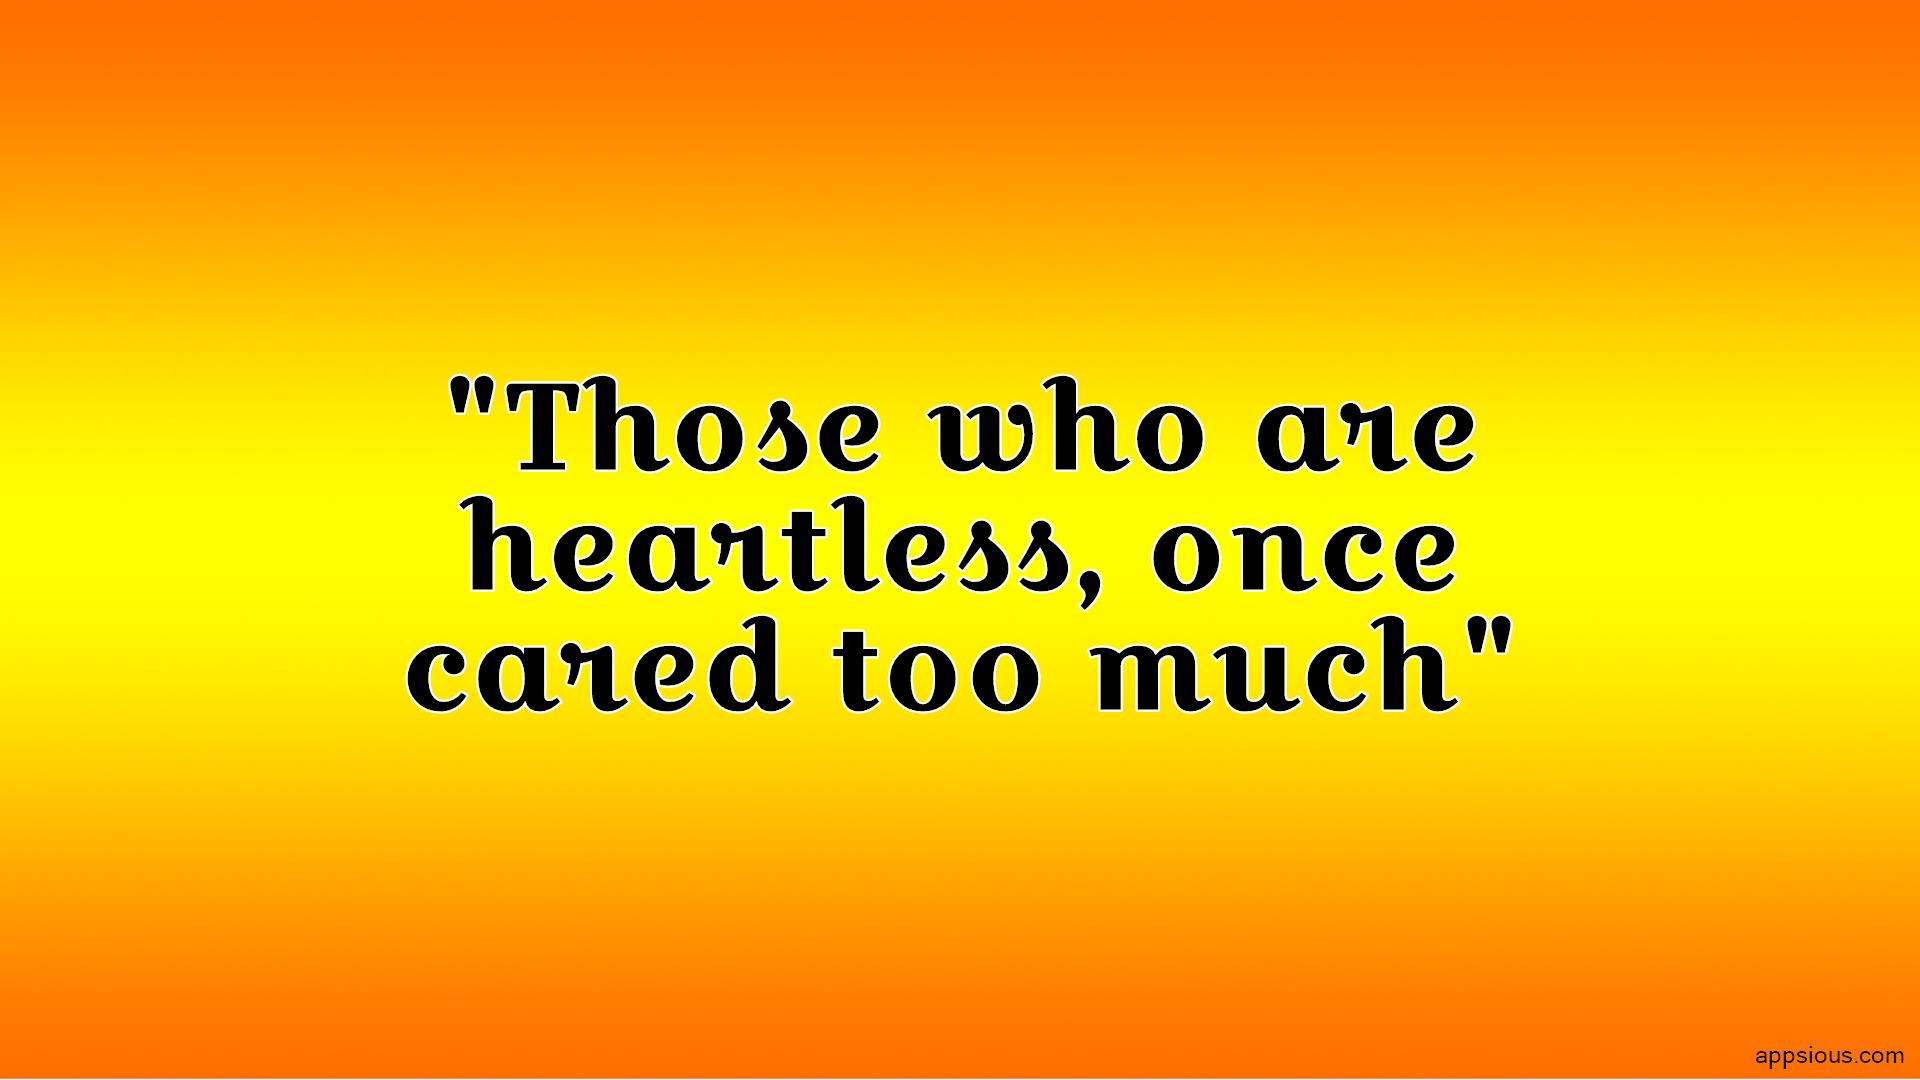 Those who are heartless, once cared too much